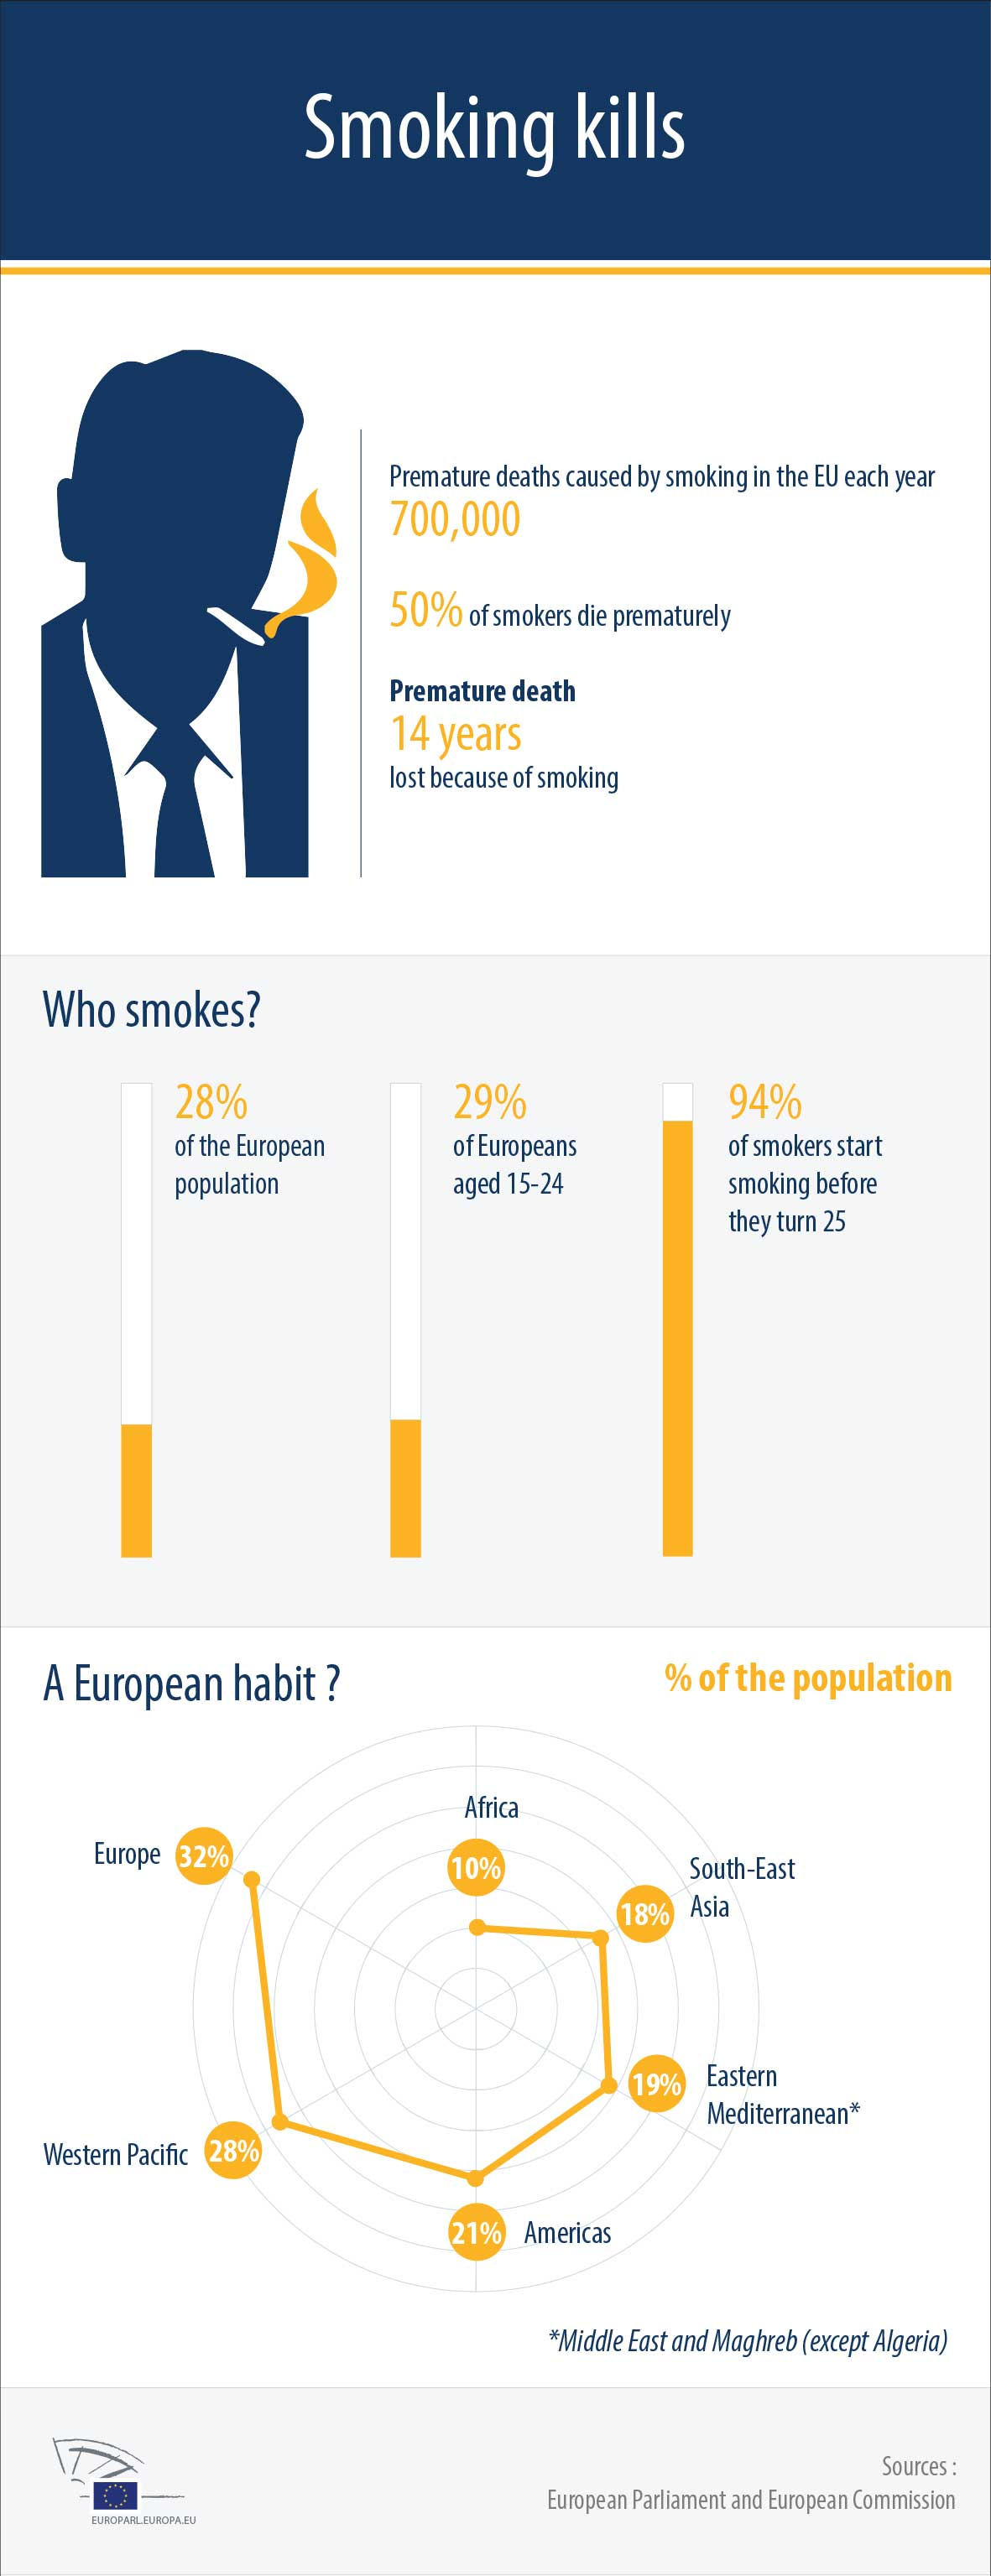 This Infographic about Smoking in Europe and the world, has been created by the European Parliament.